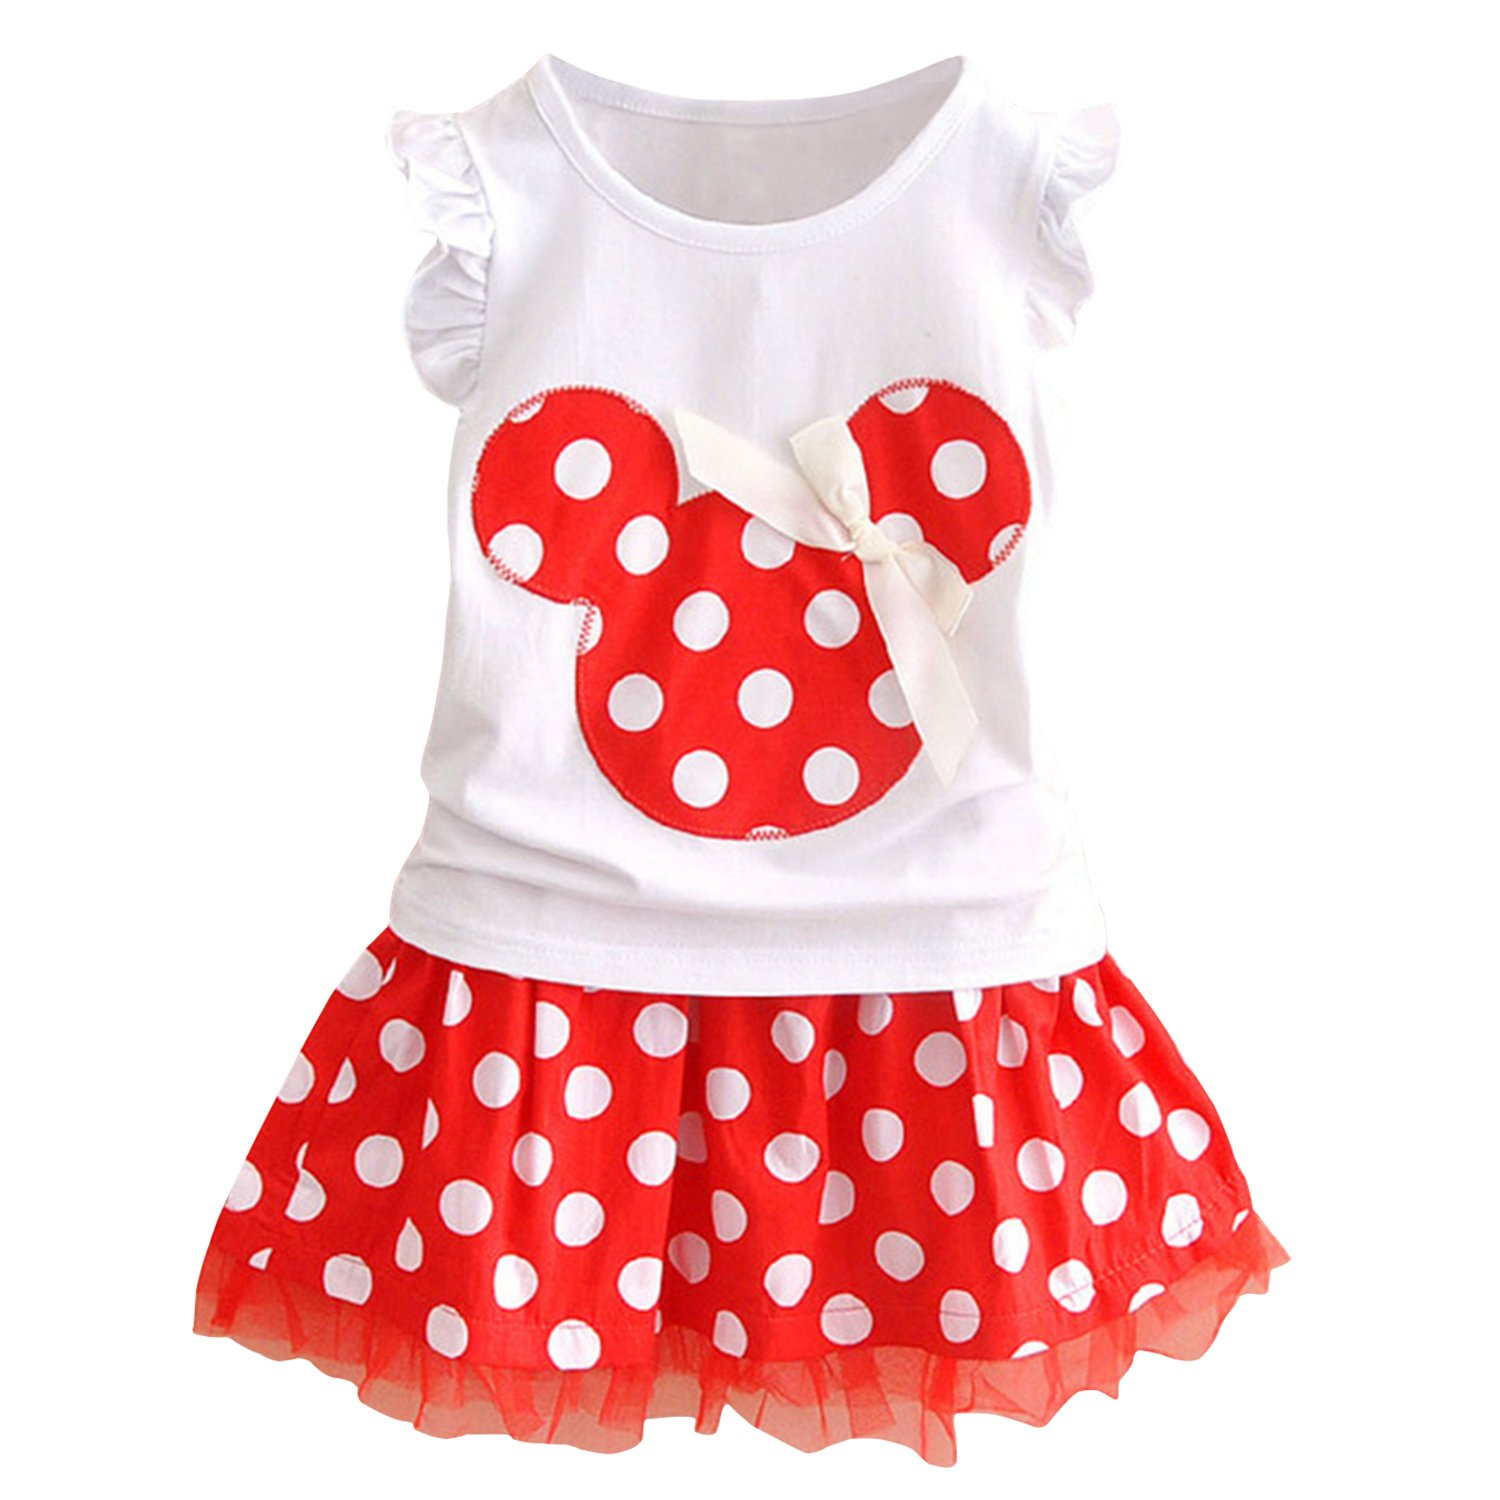 cdfc76986 5 Size Available: Suit for your baby aged 1-5 years, Please see our size  chart in product description. The bowknots on both the shirt and the polka  dots ...